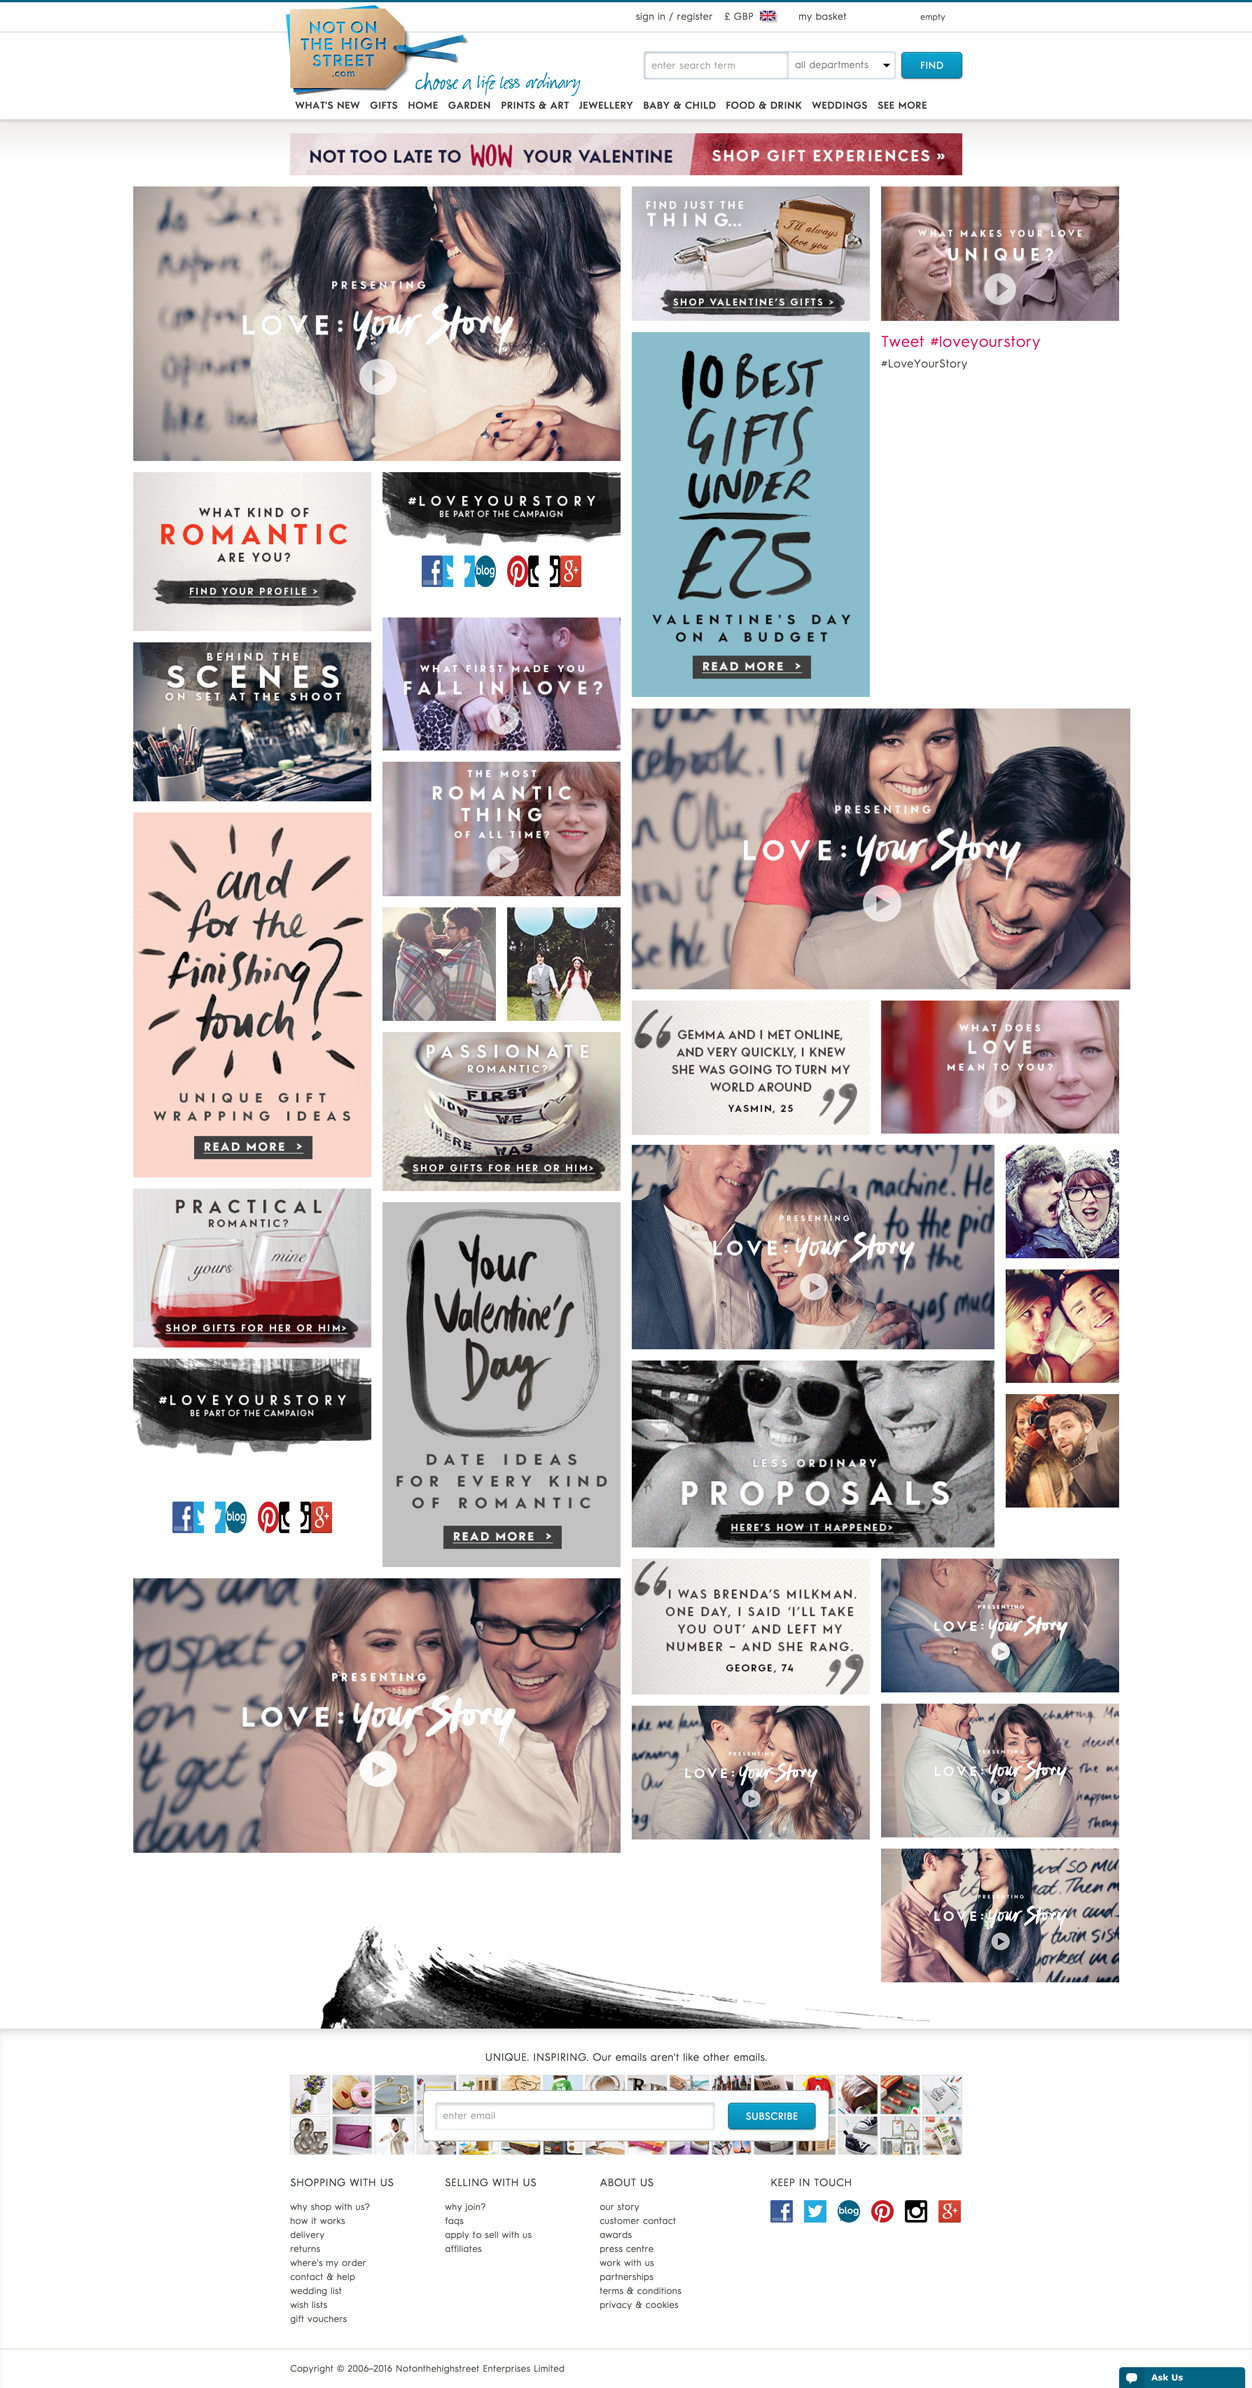 notonthehighstreet.com Valentine's Day campaign blog post Marvellous agency